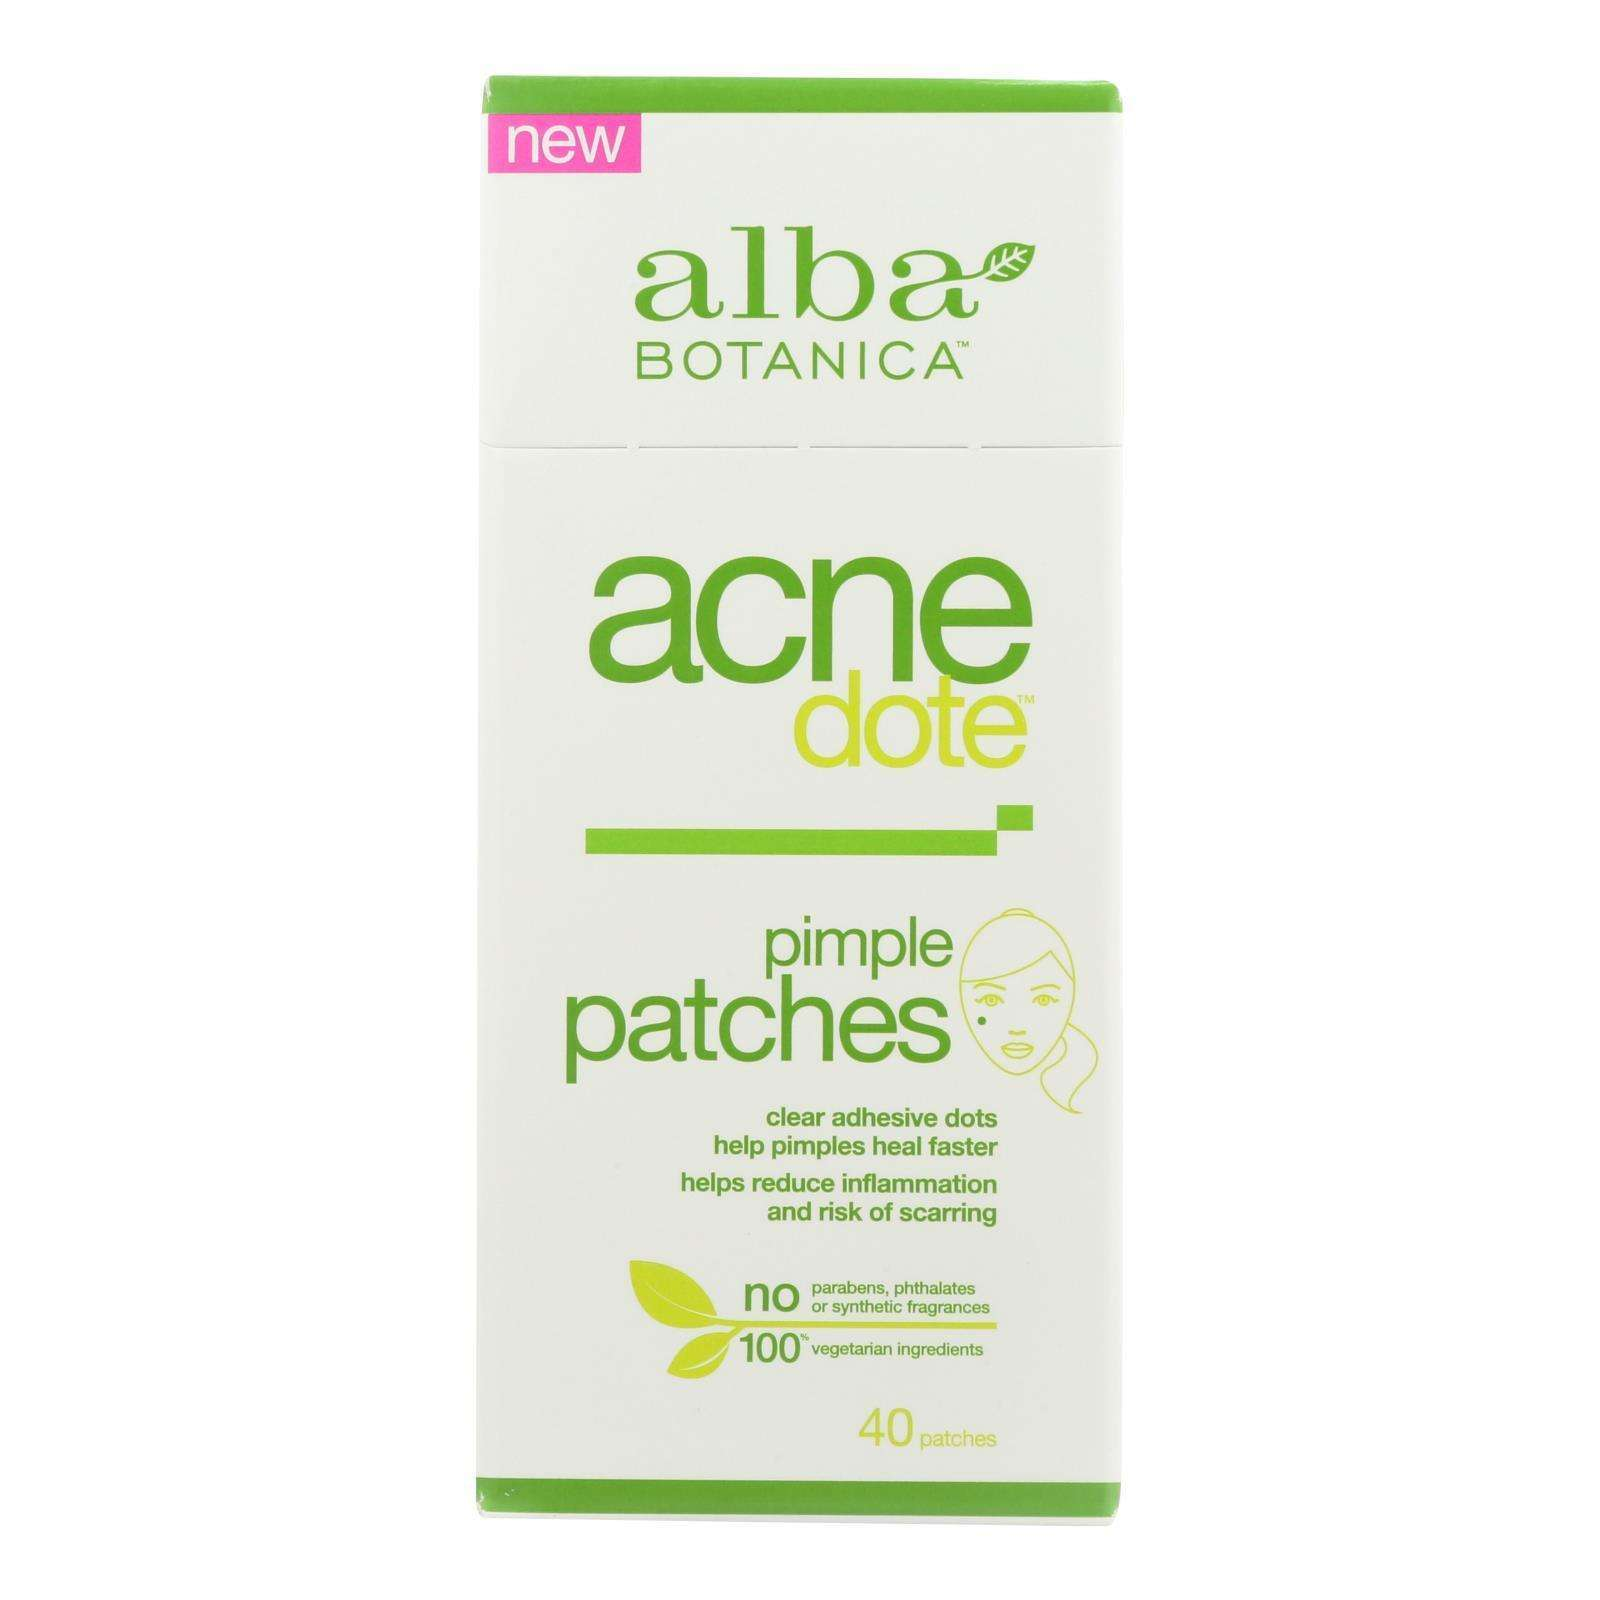 Alba Botanica - Acnedote Pimple Patches - 40 Count - BeeGreen